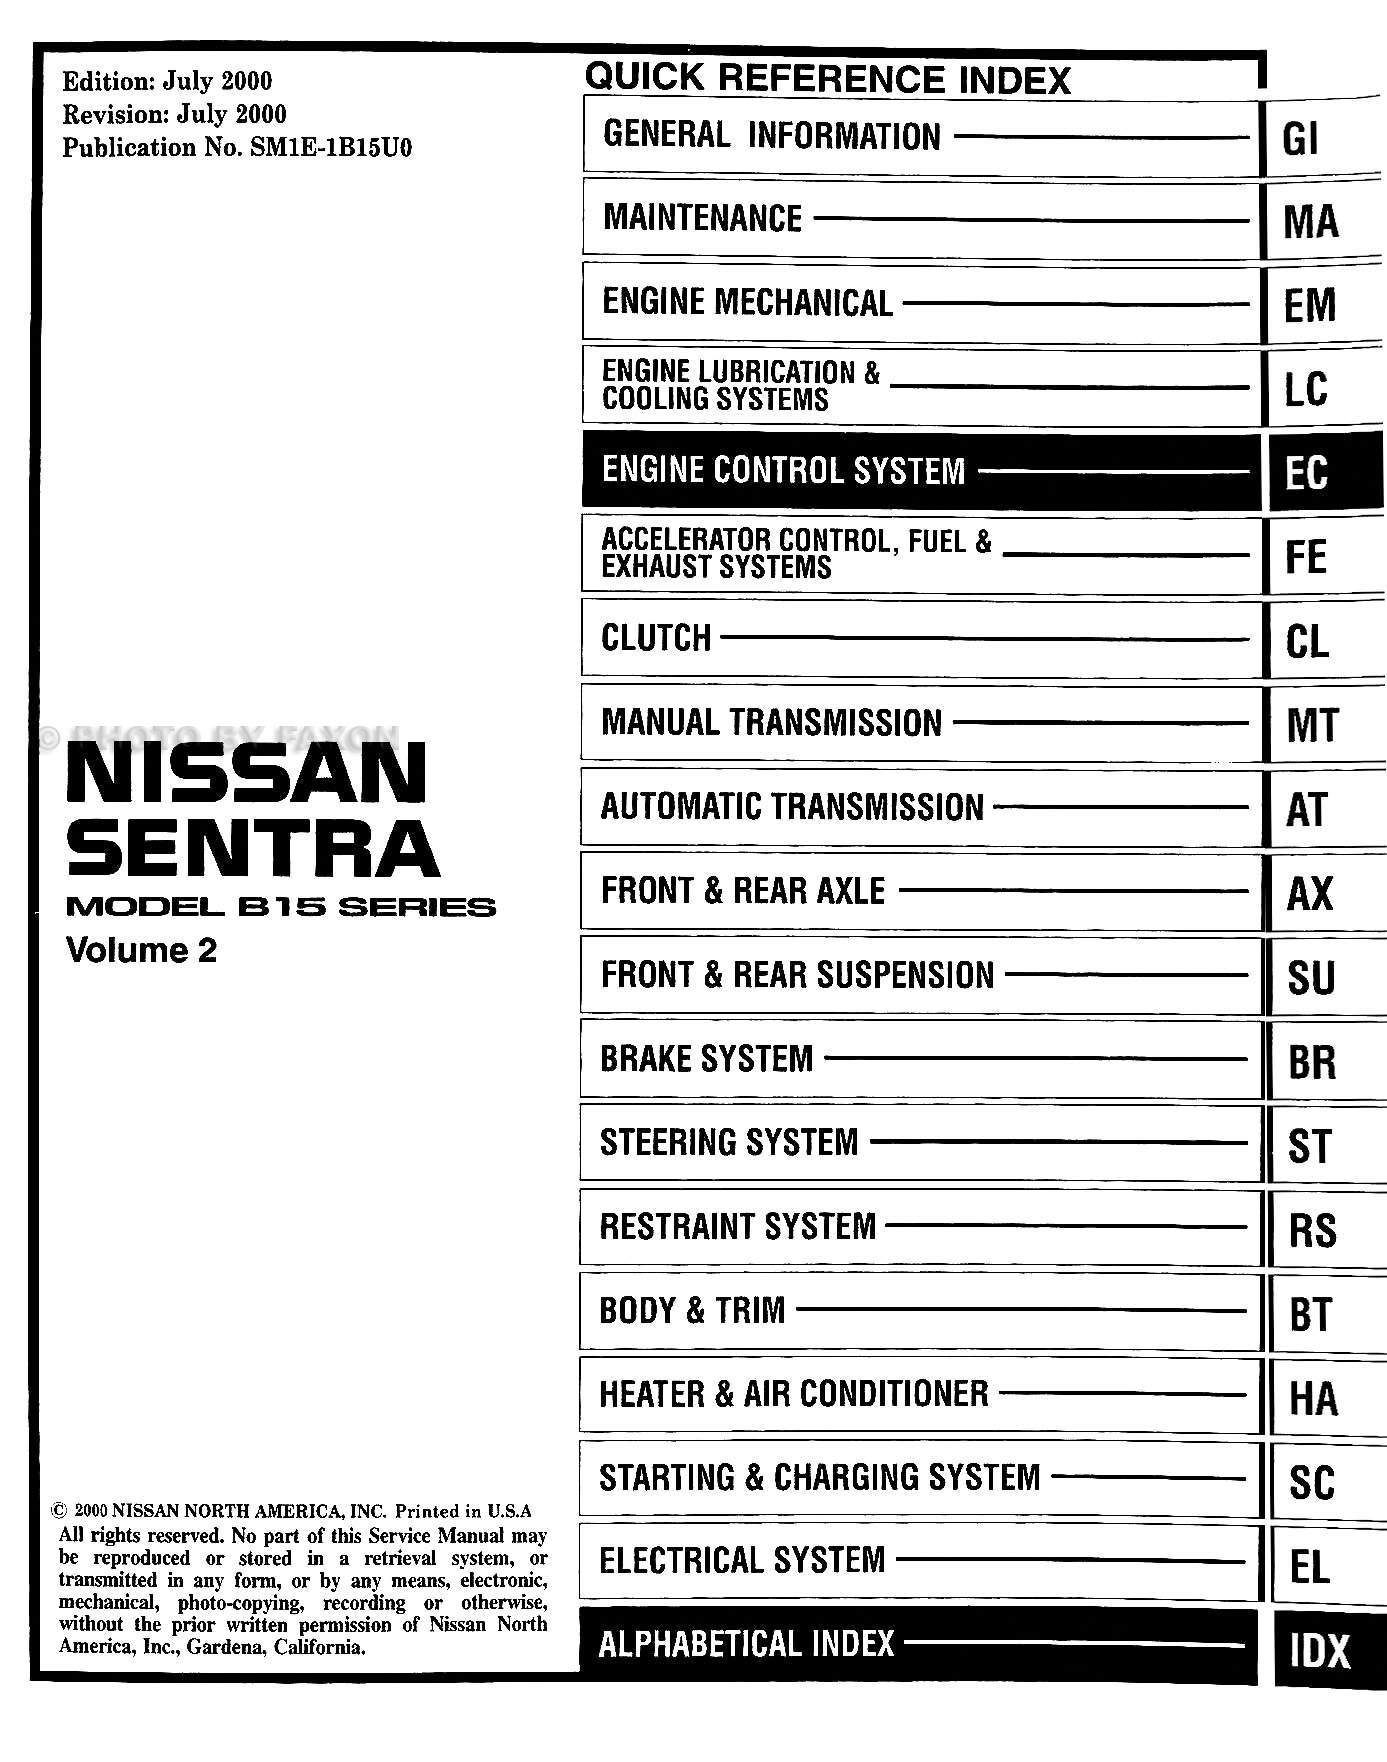 2013 nissan sentra owners manual best information of new car release rh carbuywhiz com 2002 nissan sentra service manual 2004 nissan sentra owners manual online